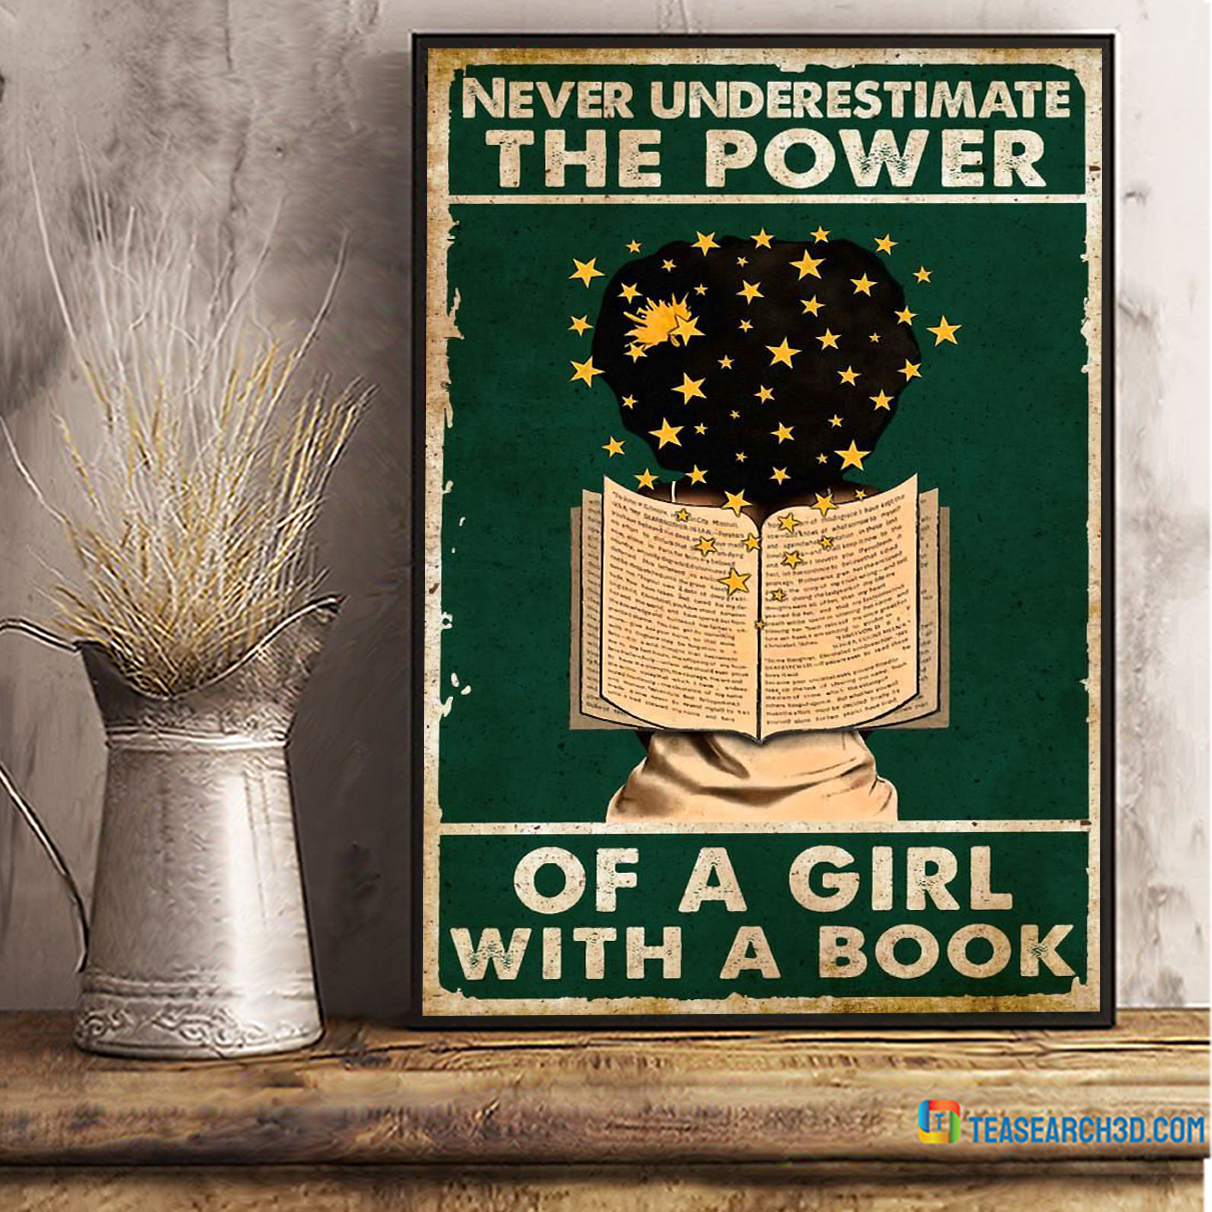 Never underestimate the power of a girl with a book poster